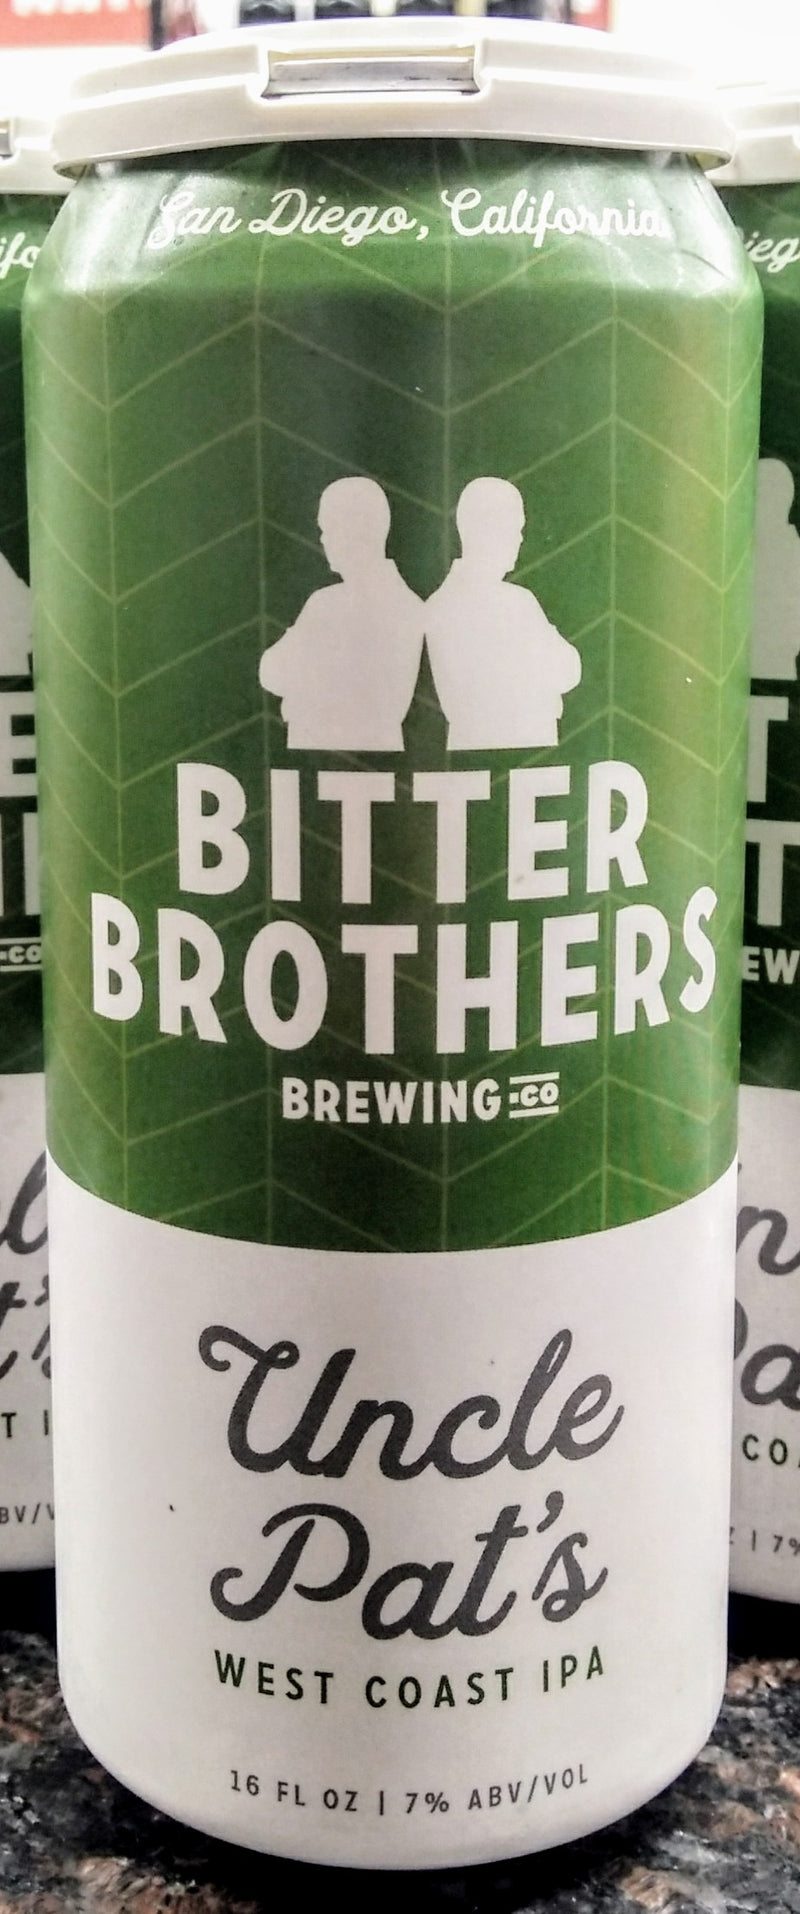 BITTER BROTHERS BREWING CO. UNCLE PAT'S WEST COAST IPA 16oz can